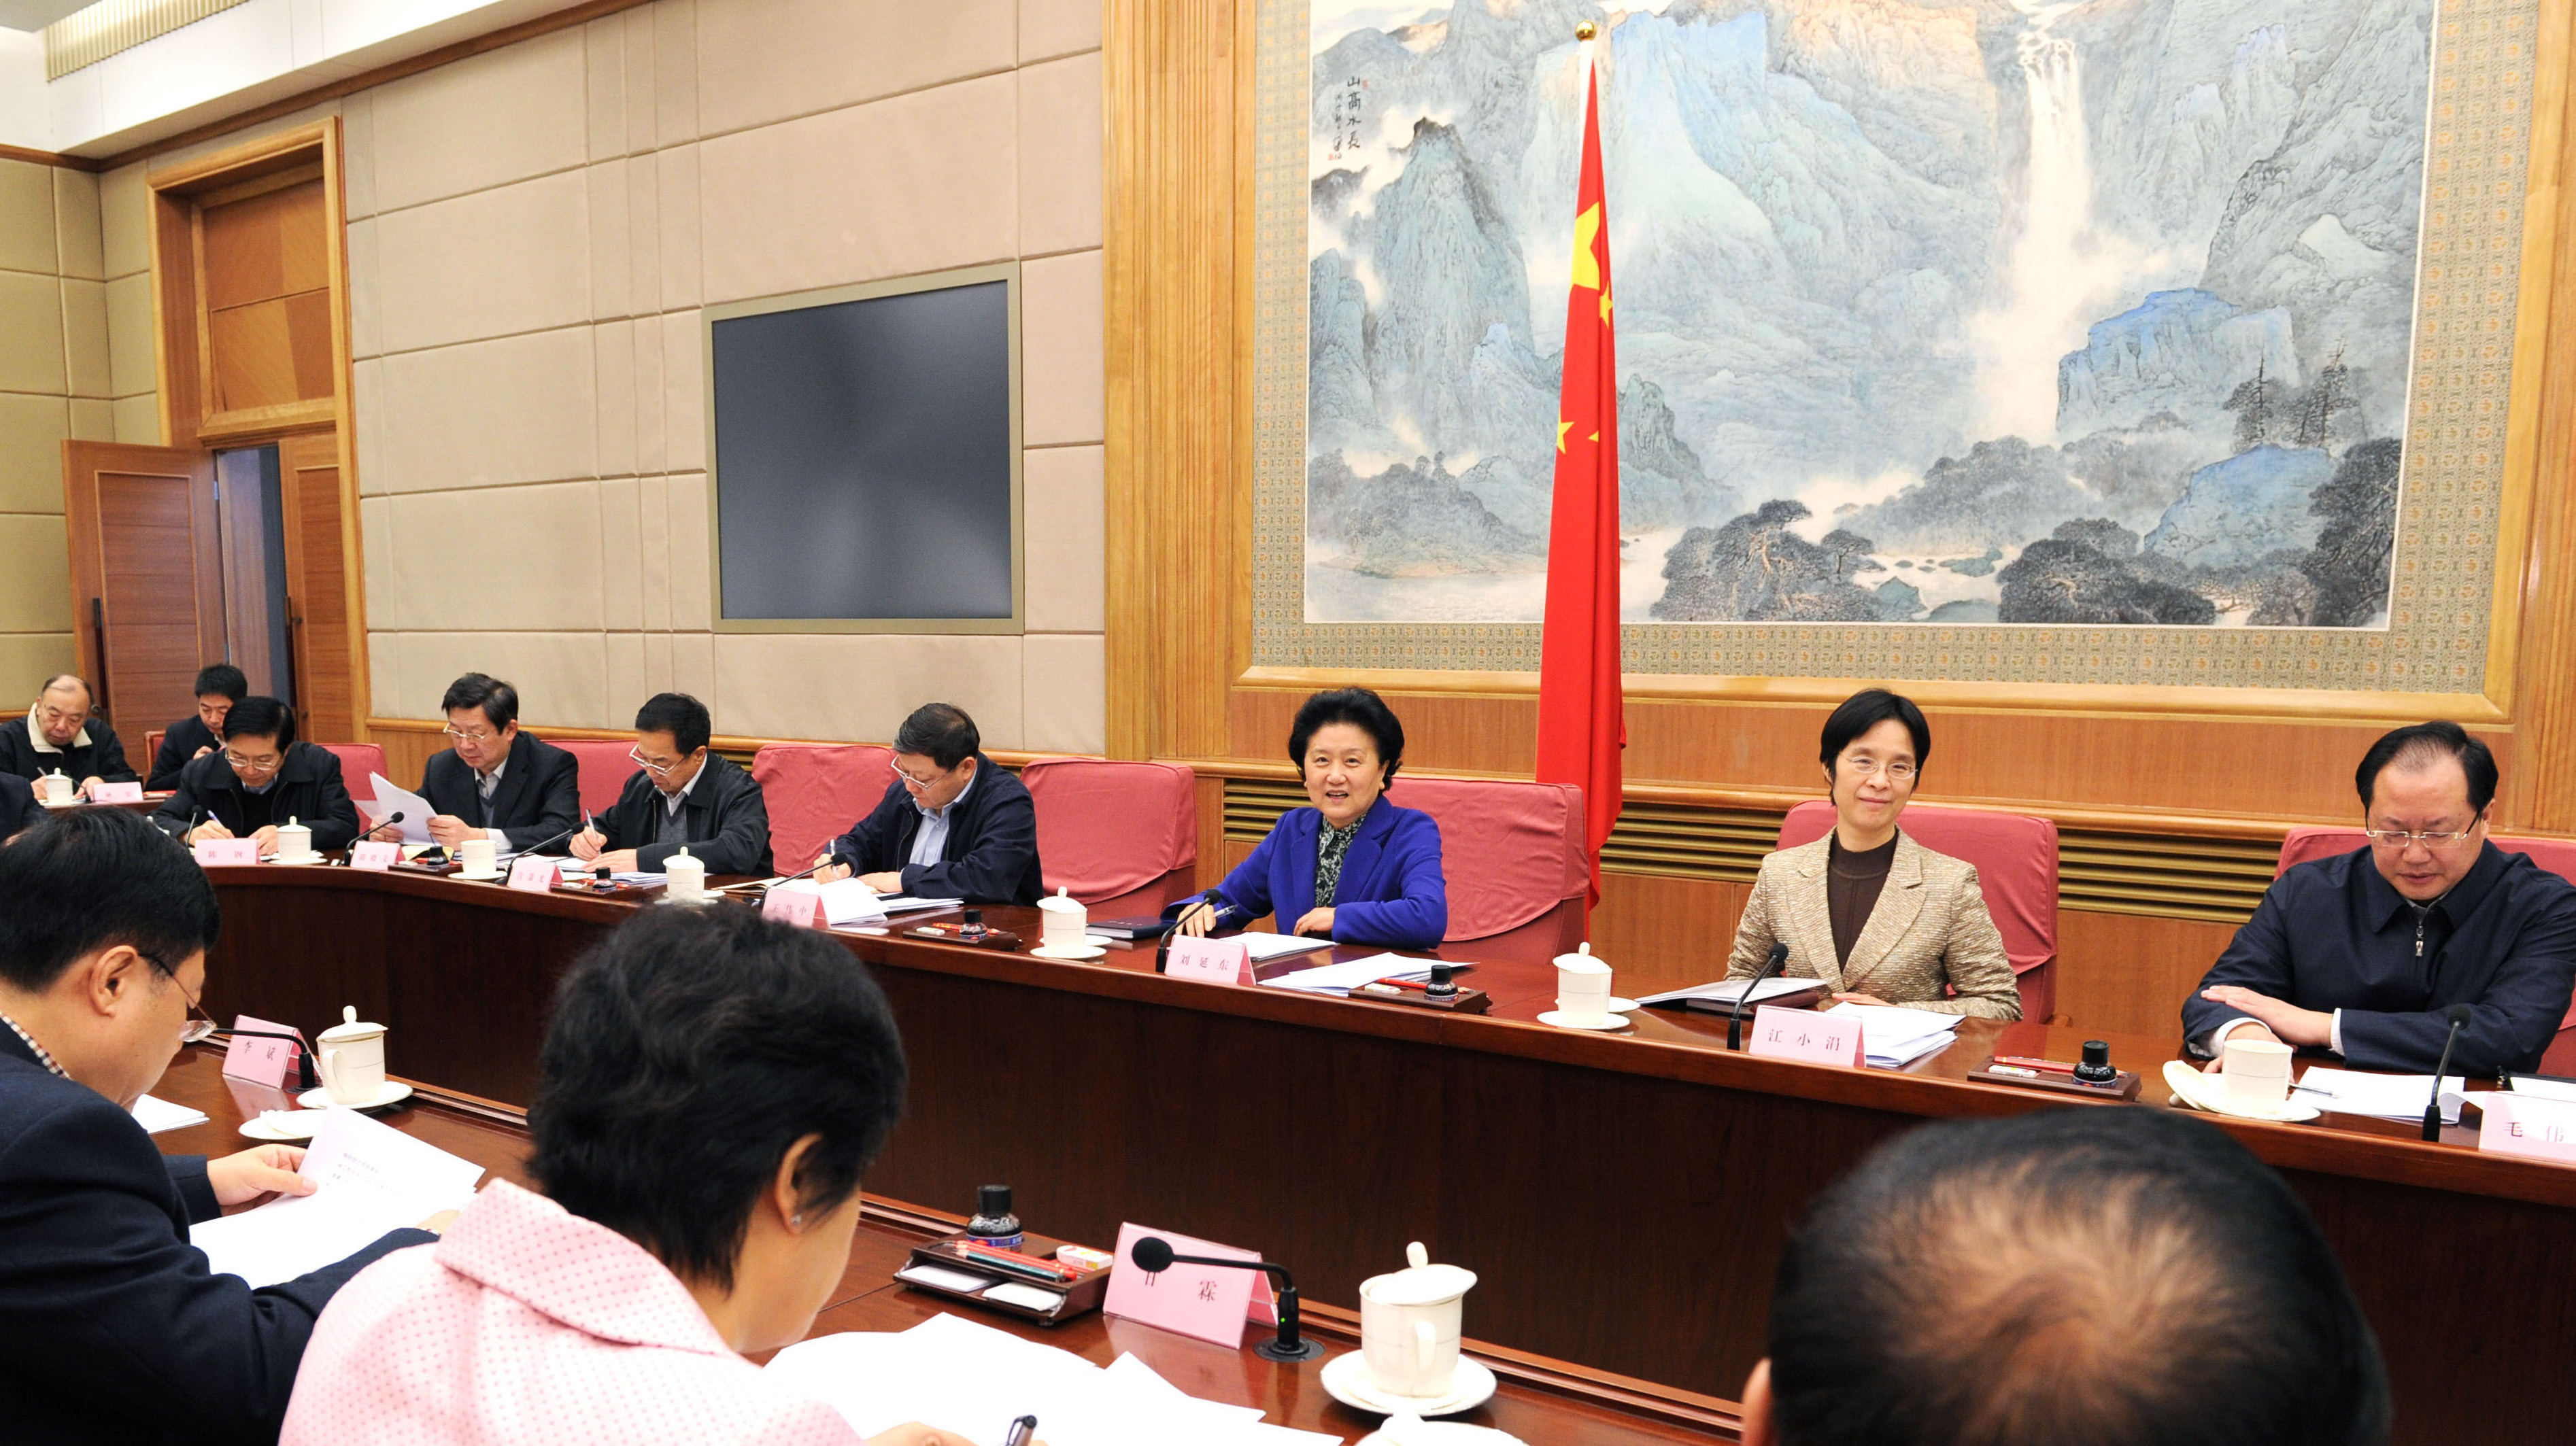 Chinese Vice Premier Liu Yandong (third from right) presides over a meeting Monday in Beijing to discuss the control and prevention of the H7N9 bird flu.